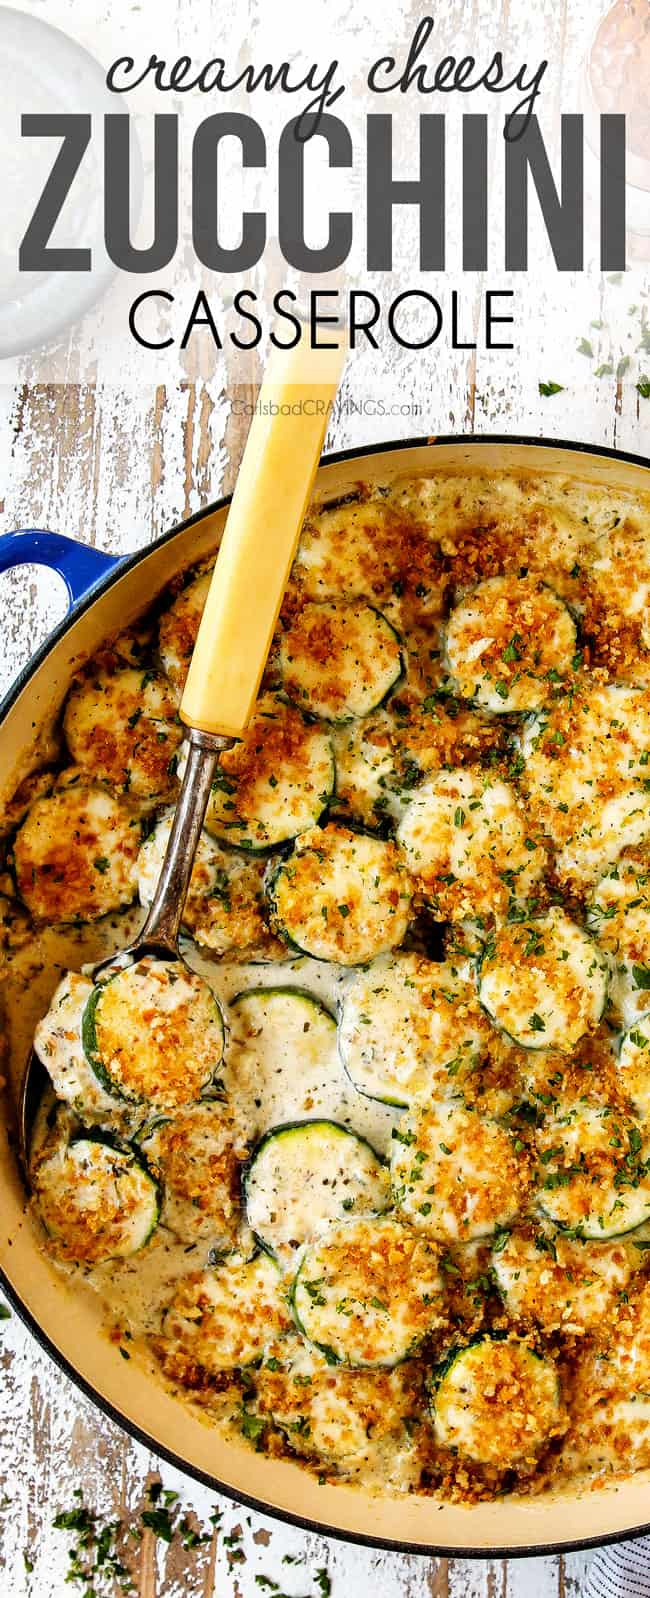 top view zucchini casserole made with heavy cream, cheese, sour cream and panko bread crumbs